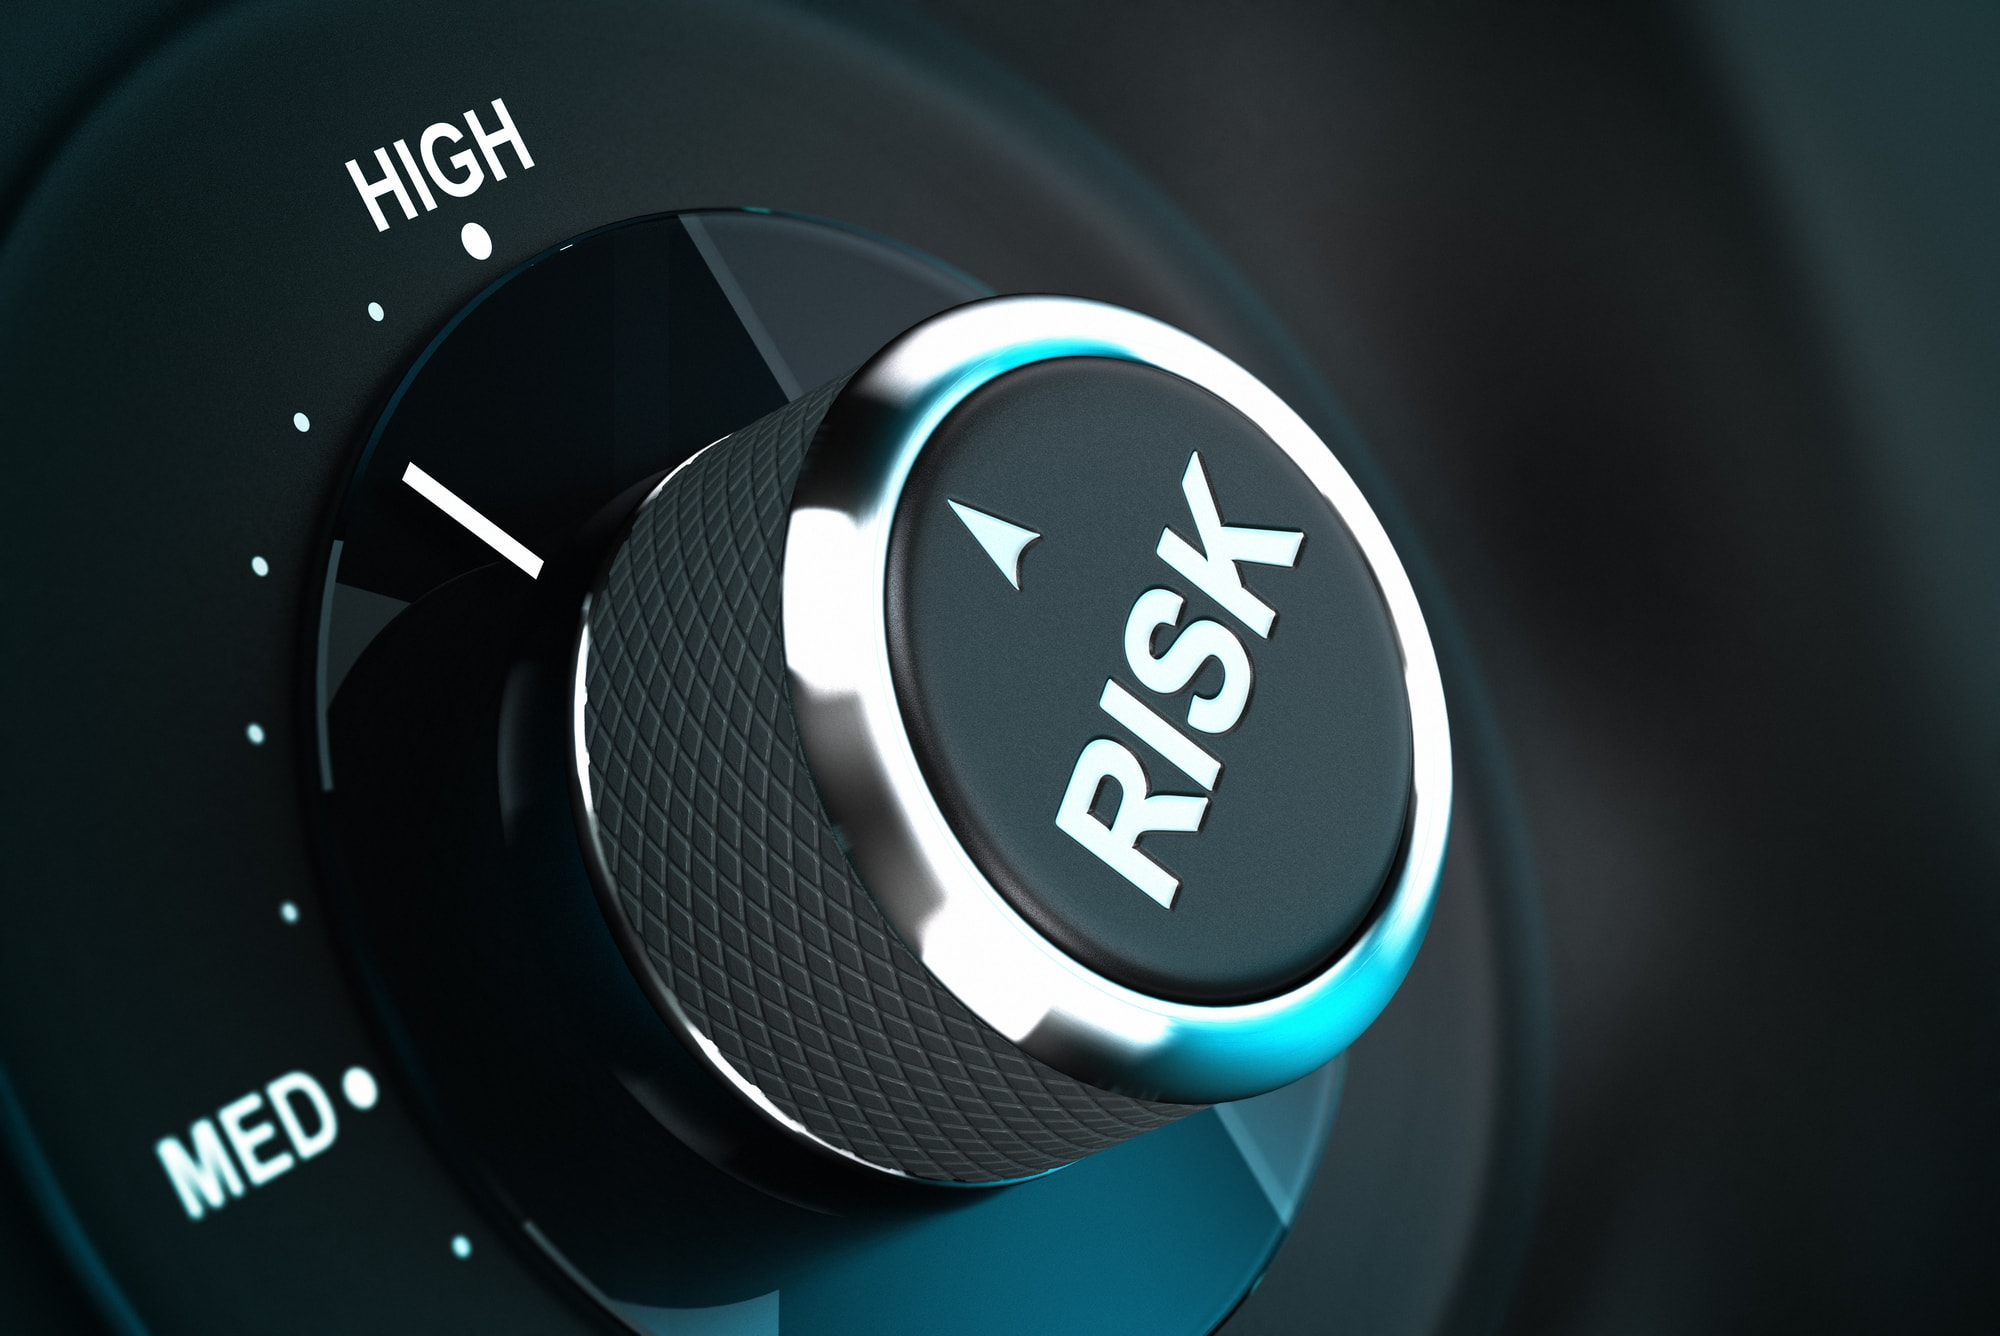 Software testing risk analysis is a crucial step.